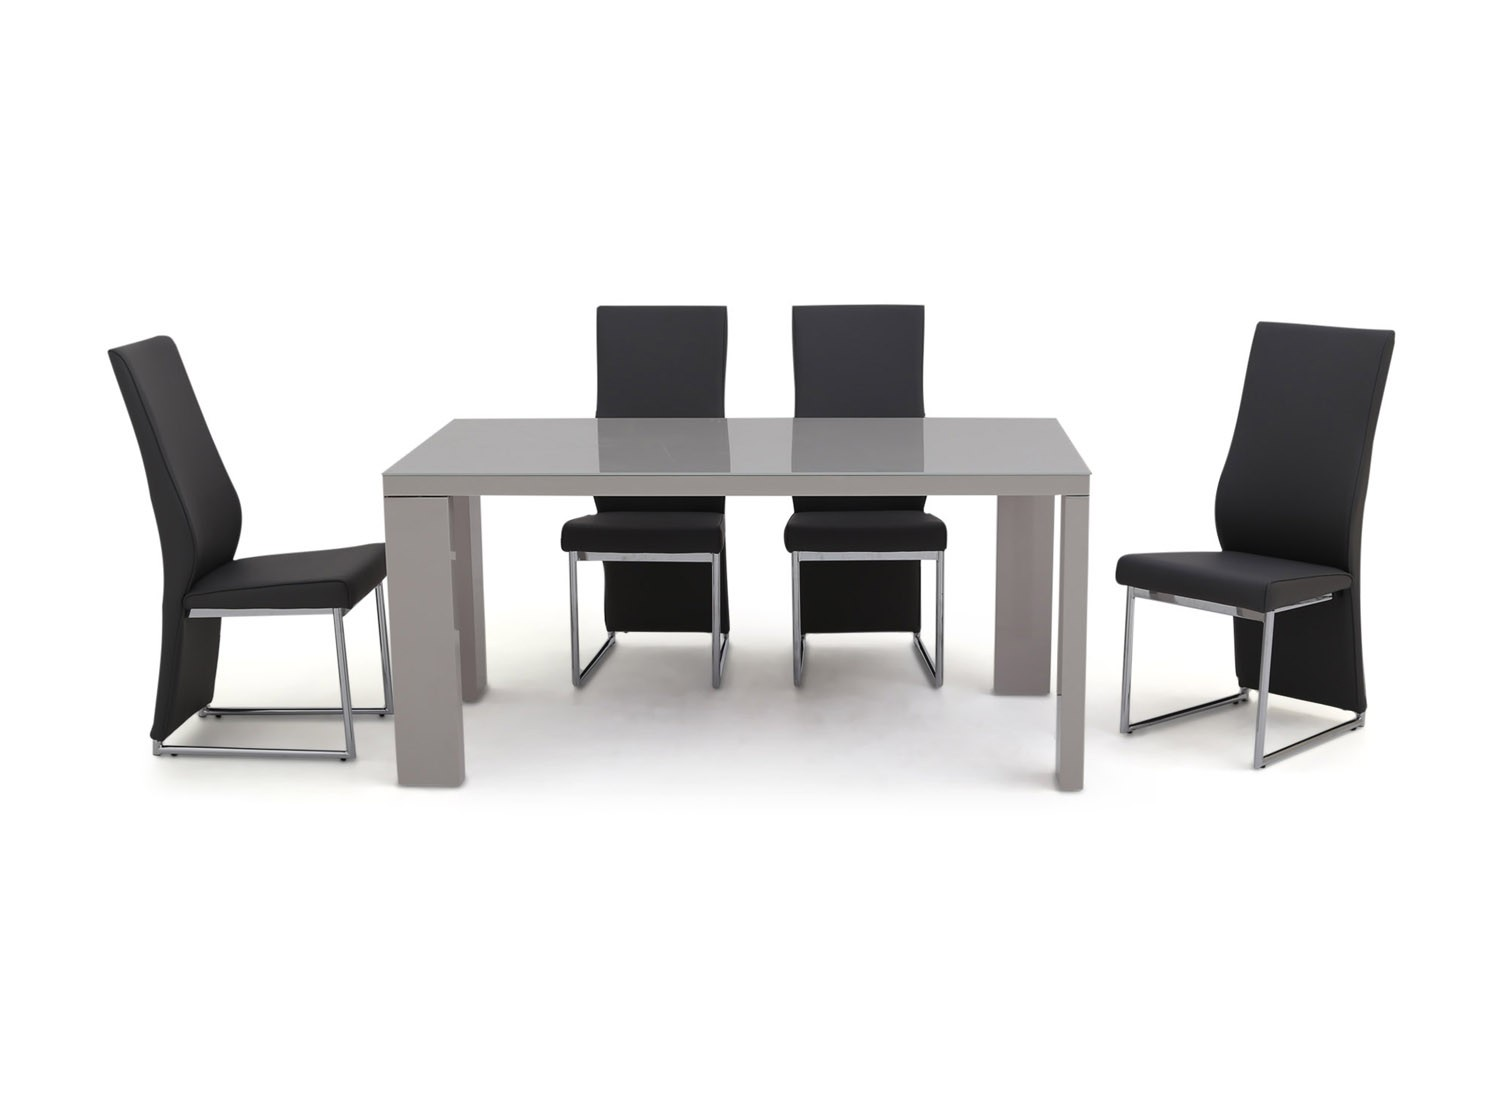 https://www.firstfurniture.co.uk/pub/media/catalog/product/f/a/fairmont_lucca_grey_high_gloss_dining_table_6_remo_grey_chairs_1.jpg